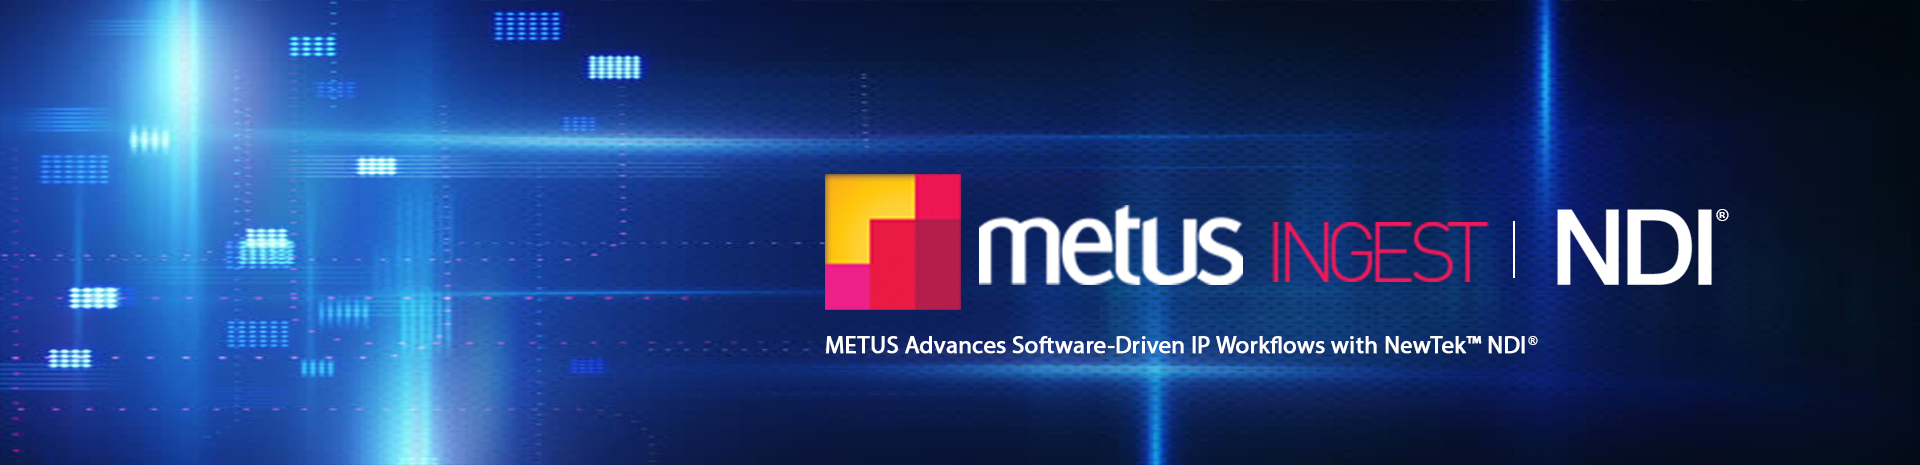 METUS Advances Software-Driven IP Workflows with NewTek NDI